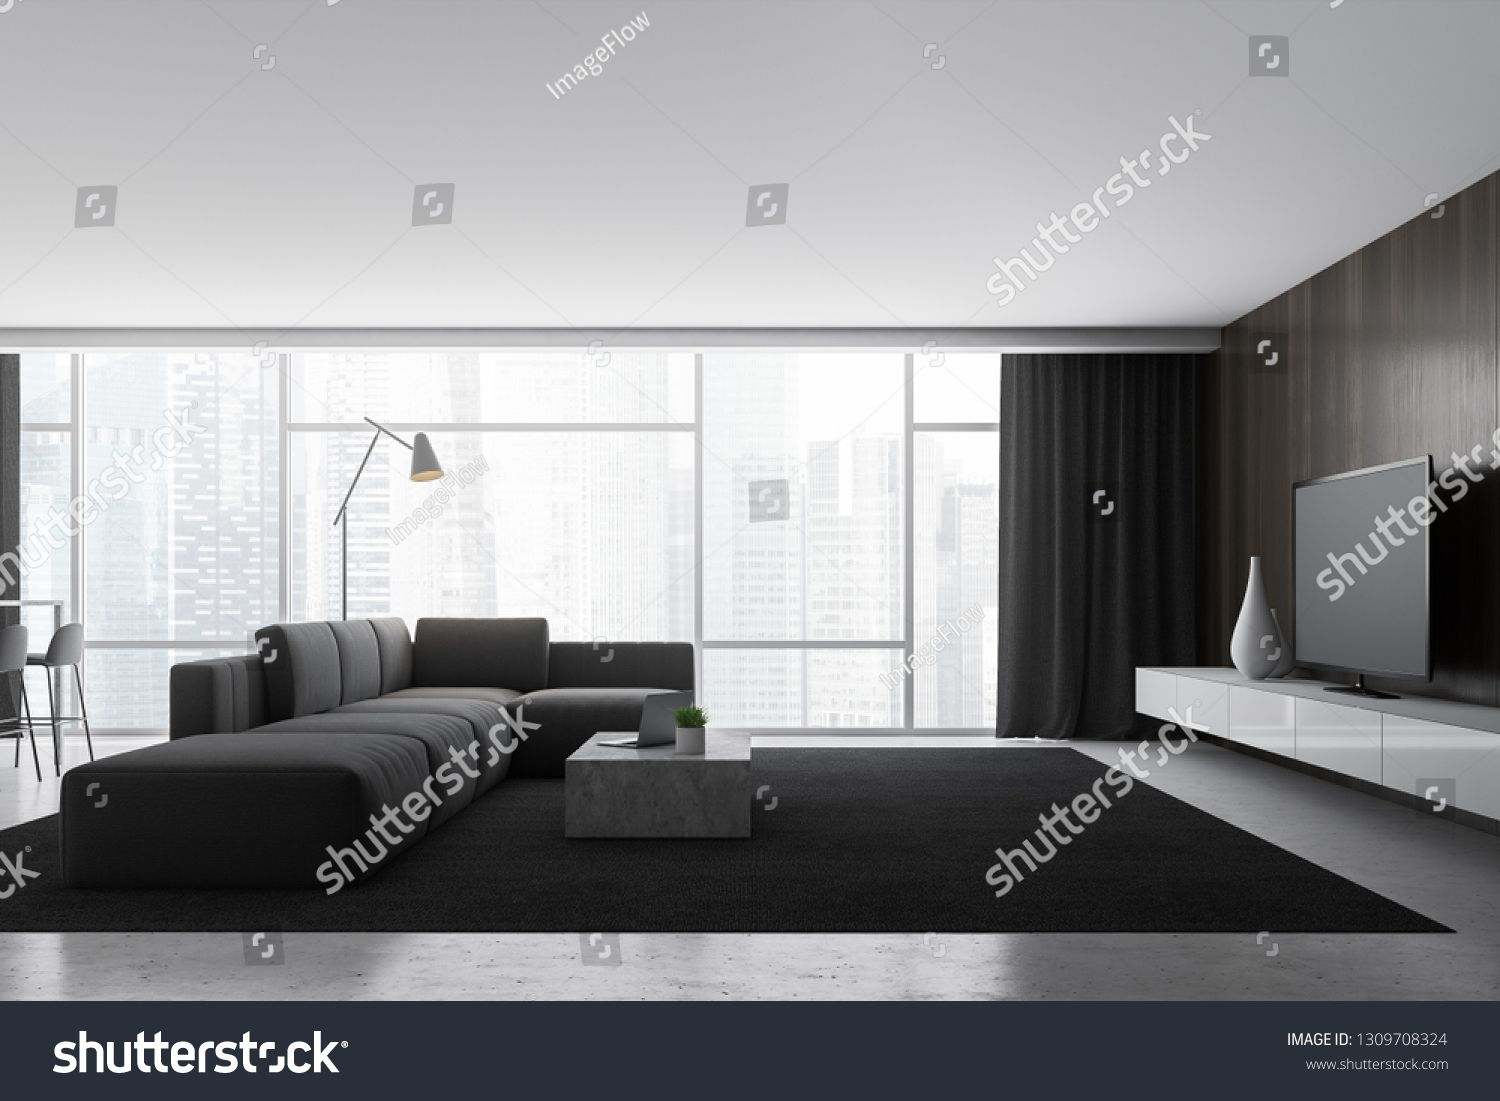 Interior of panoramic living room with wooden walls, stone